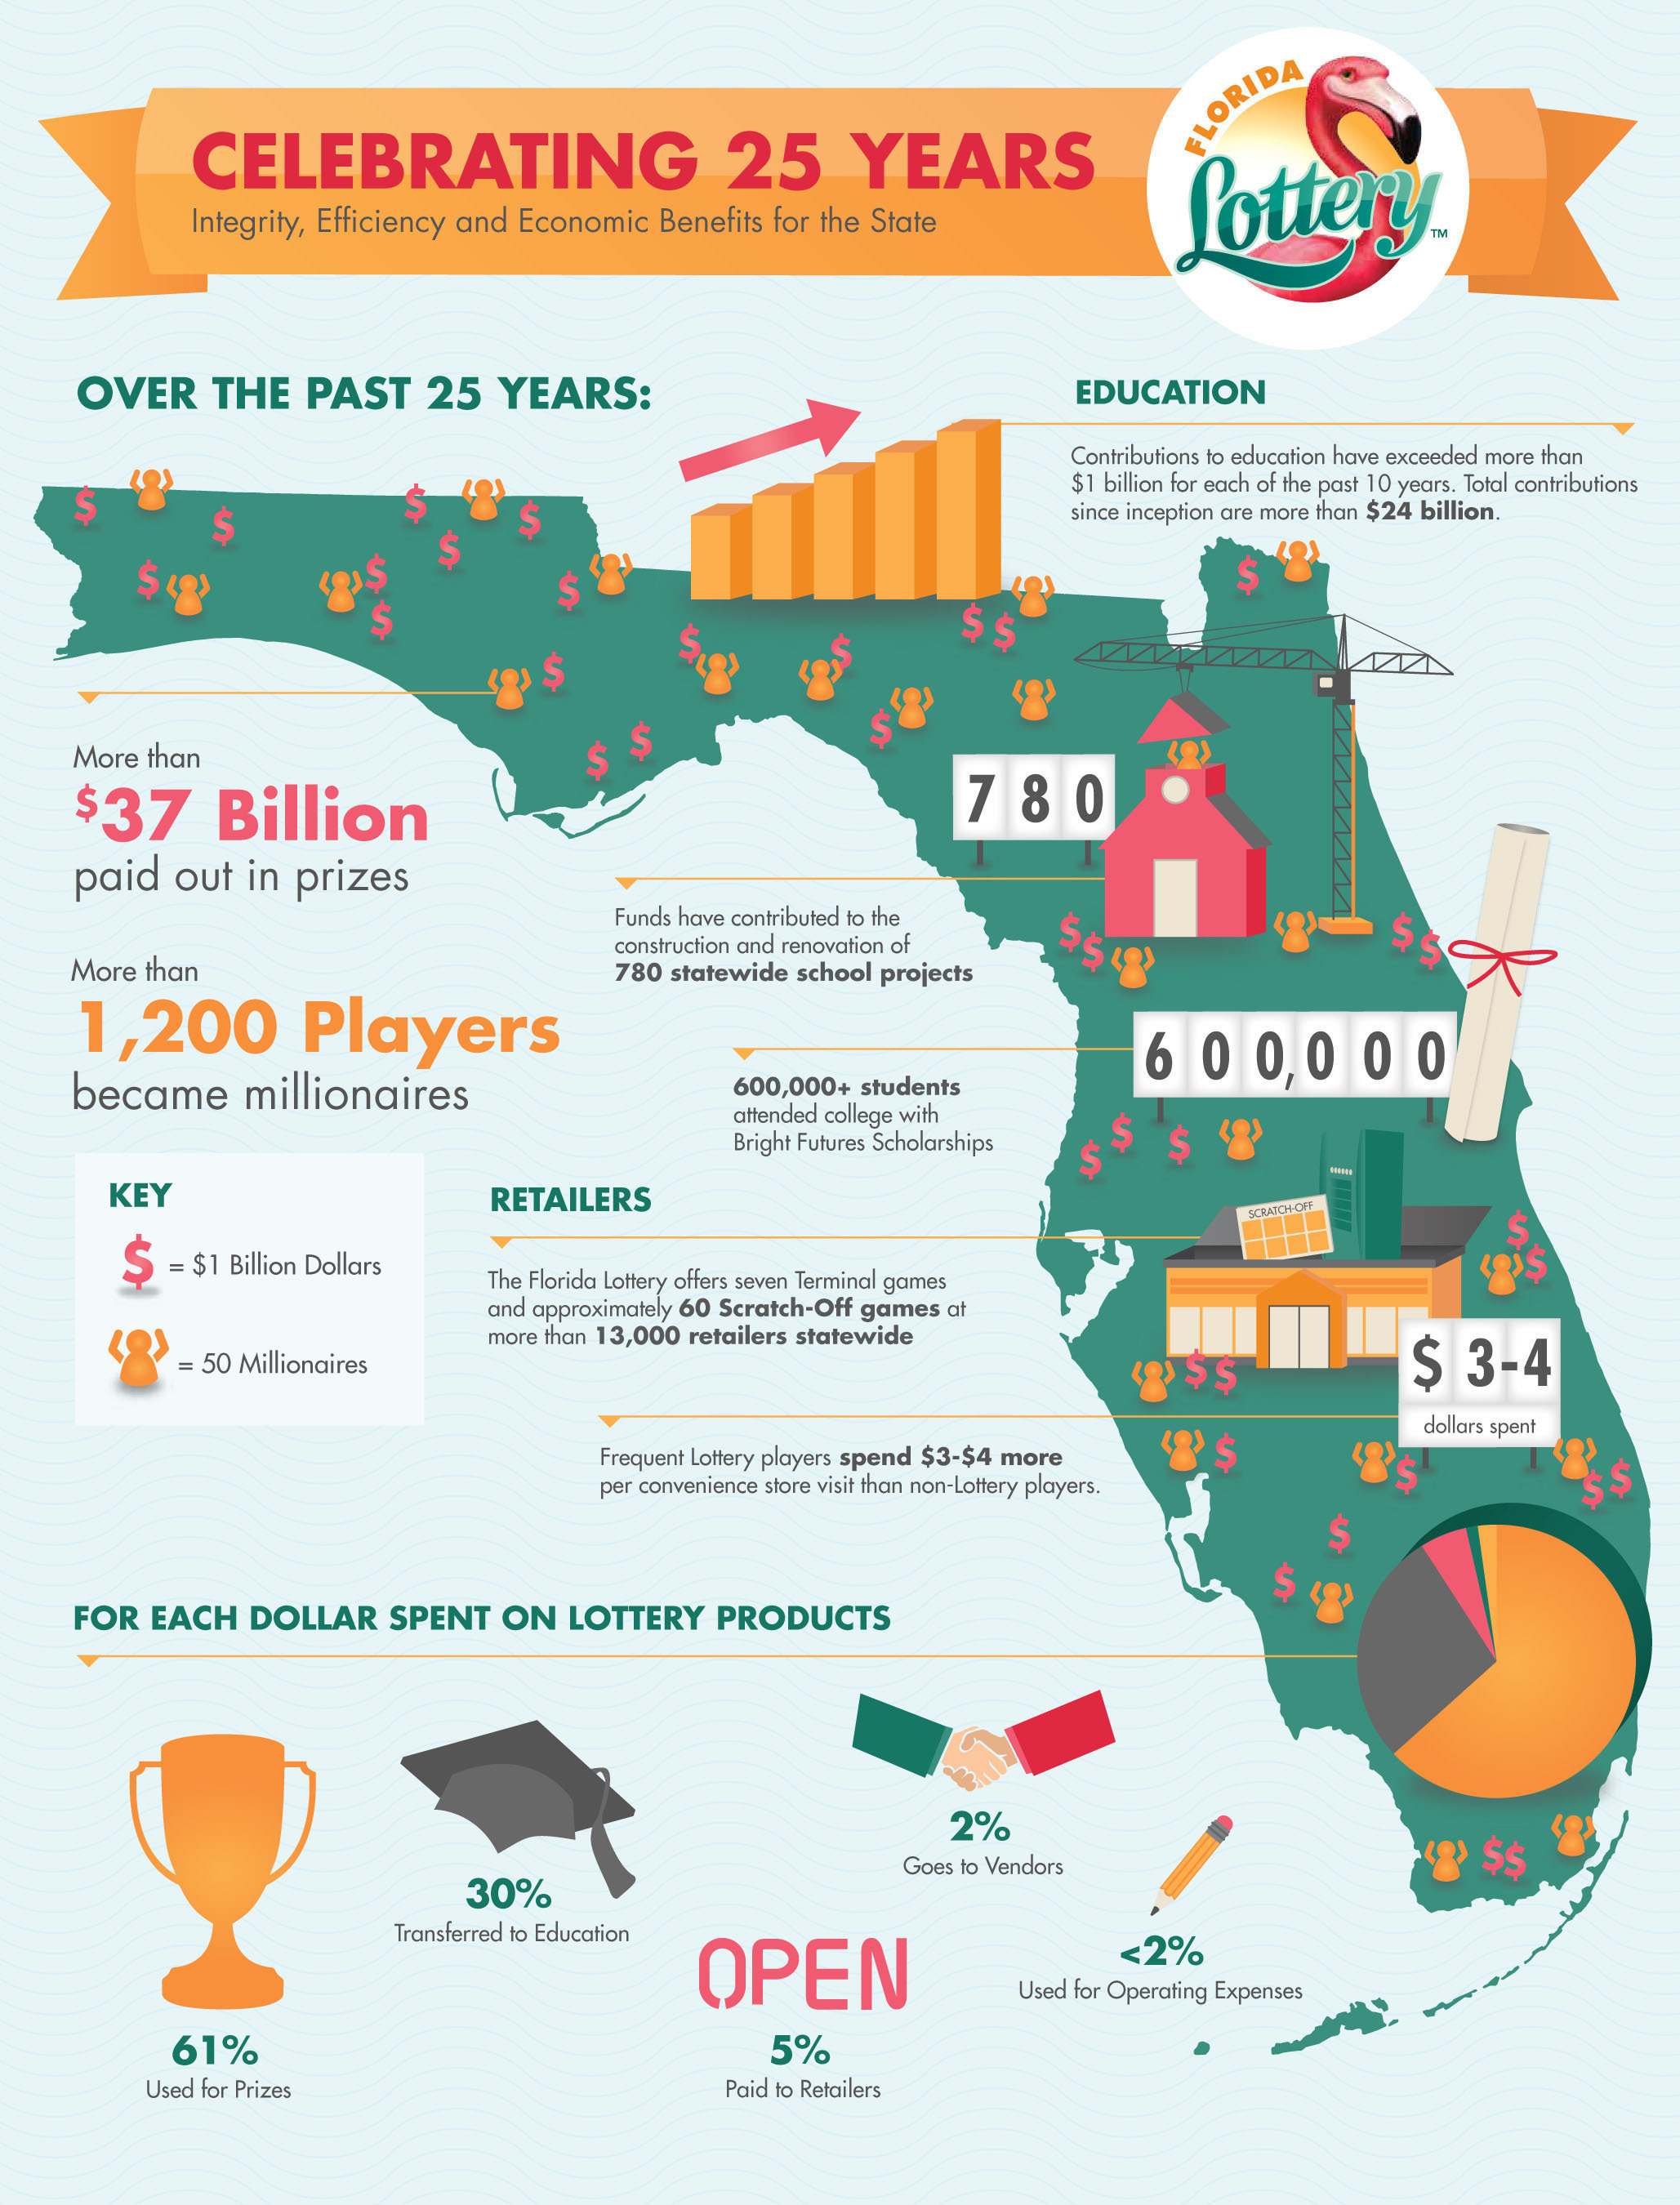 Florida Lottery Unveils New Logo And Brand In Honor Of Its 25th Anniversary